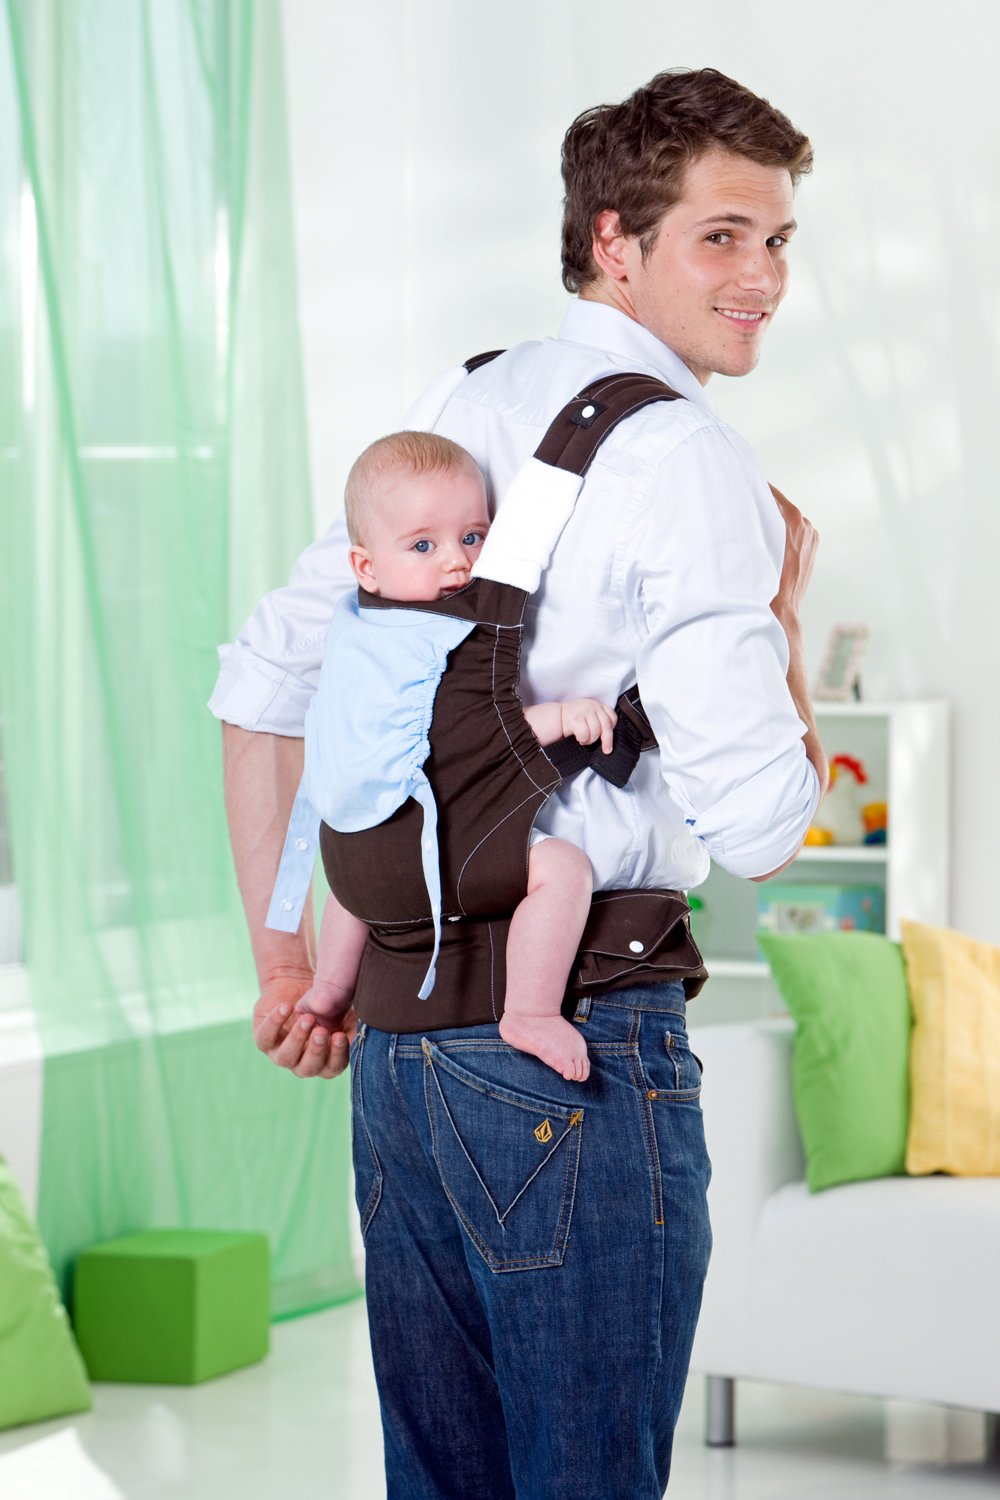 Amazonas Baby Smart Carrier - Earth AMAZONAS Waist belt length: 78 - 145 cm Flexible bridge: approx. 26 - 33 cm Load capacity: max. 3.5 - 15 kg 3